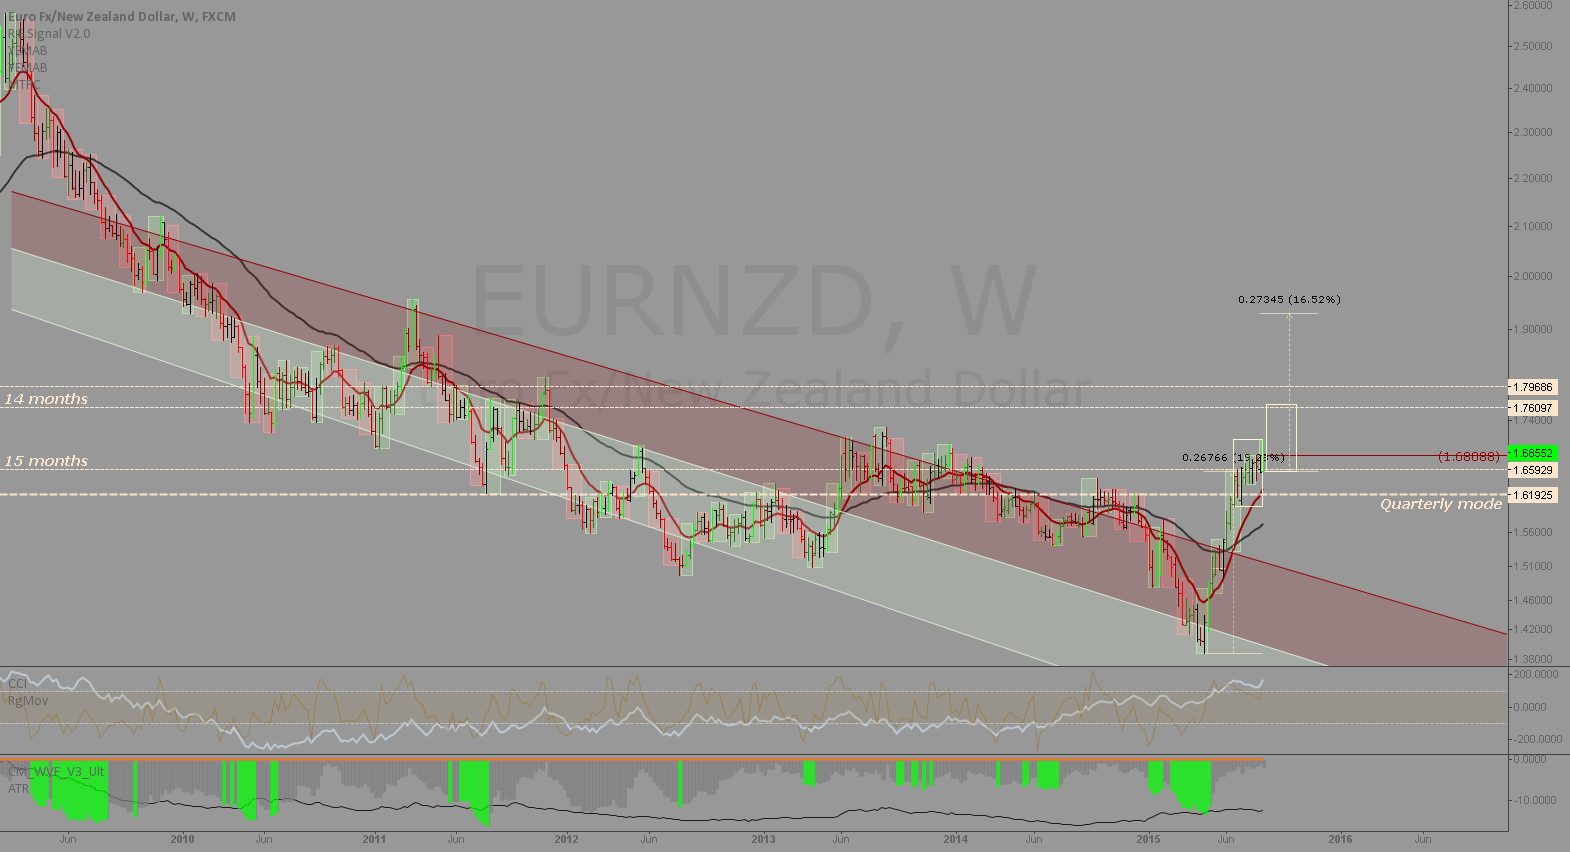 EURNZD: Massive uptrend in place